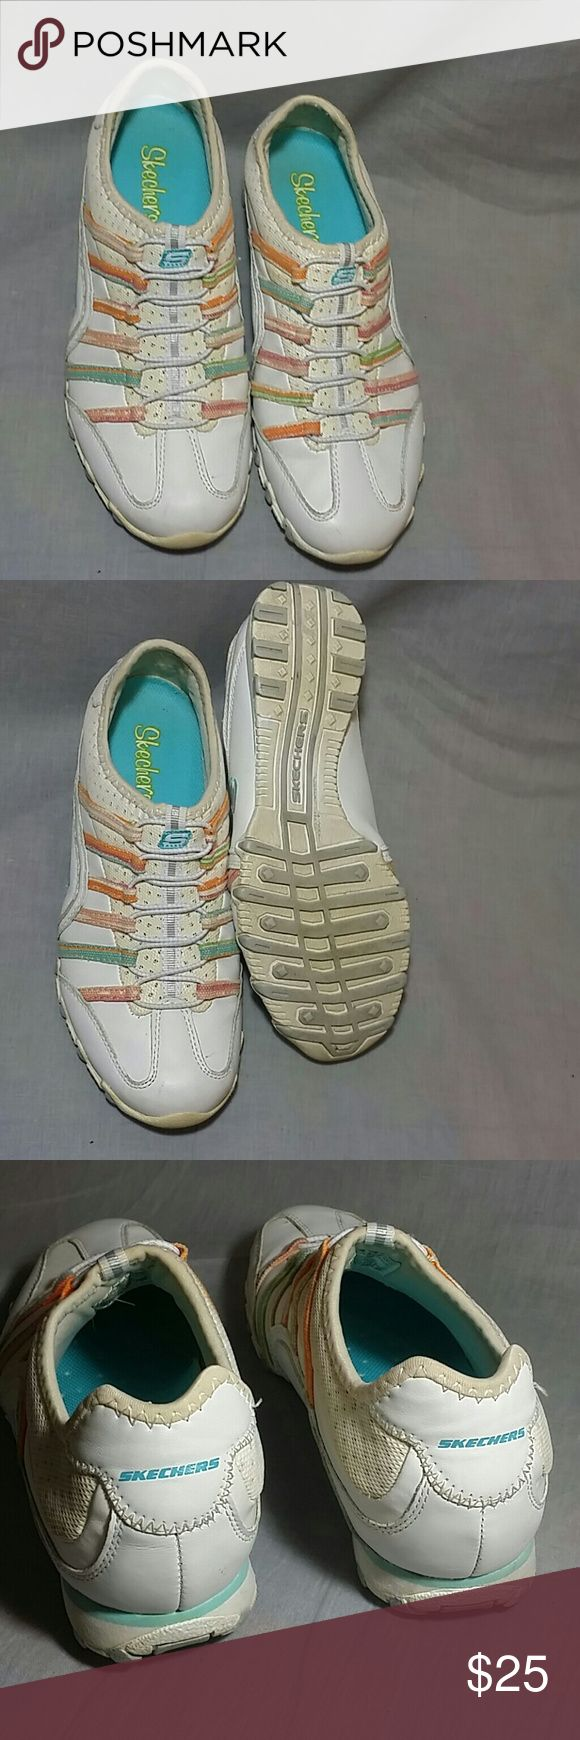 Women's Skechers Slip-on Shoes Leather 7 M Multi-color Item is in a good condition, (please check my bundle discount thanks for visiting). Skechers Shoes Sneakers